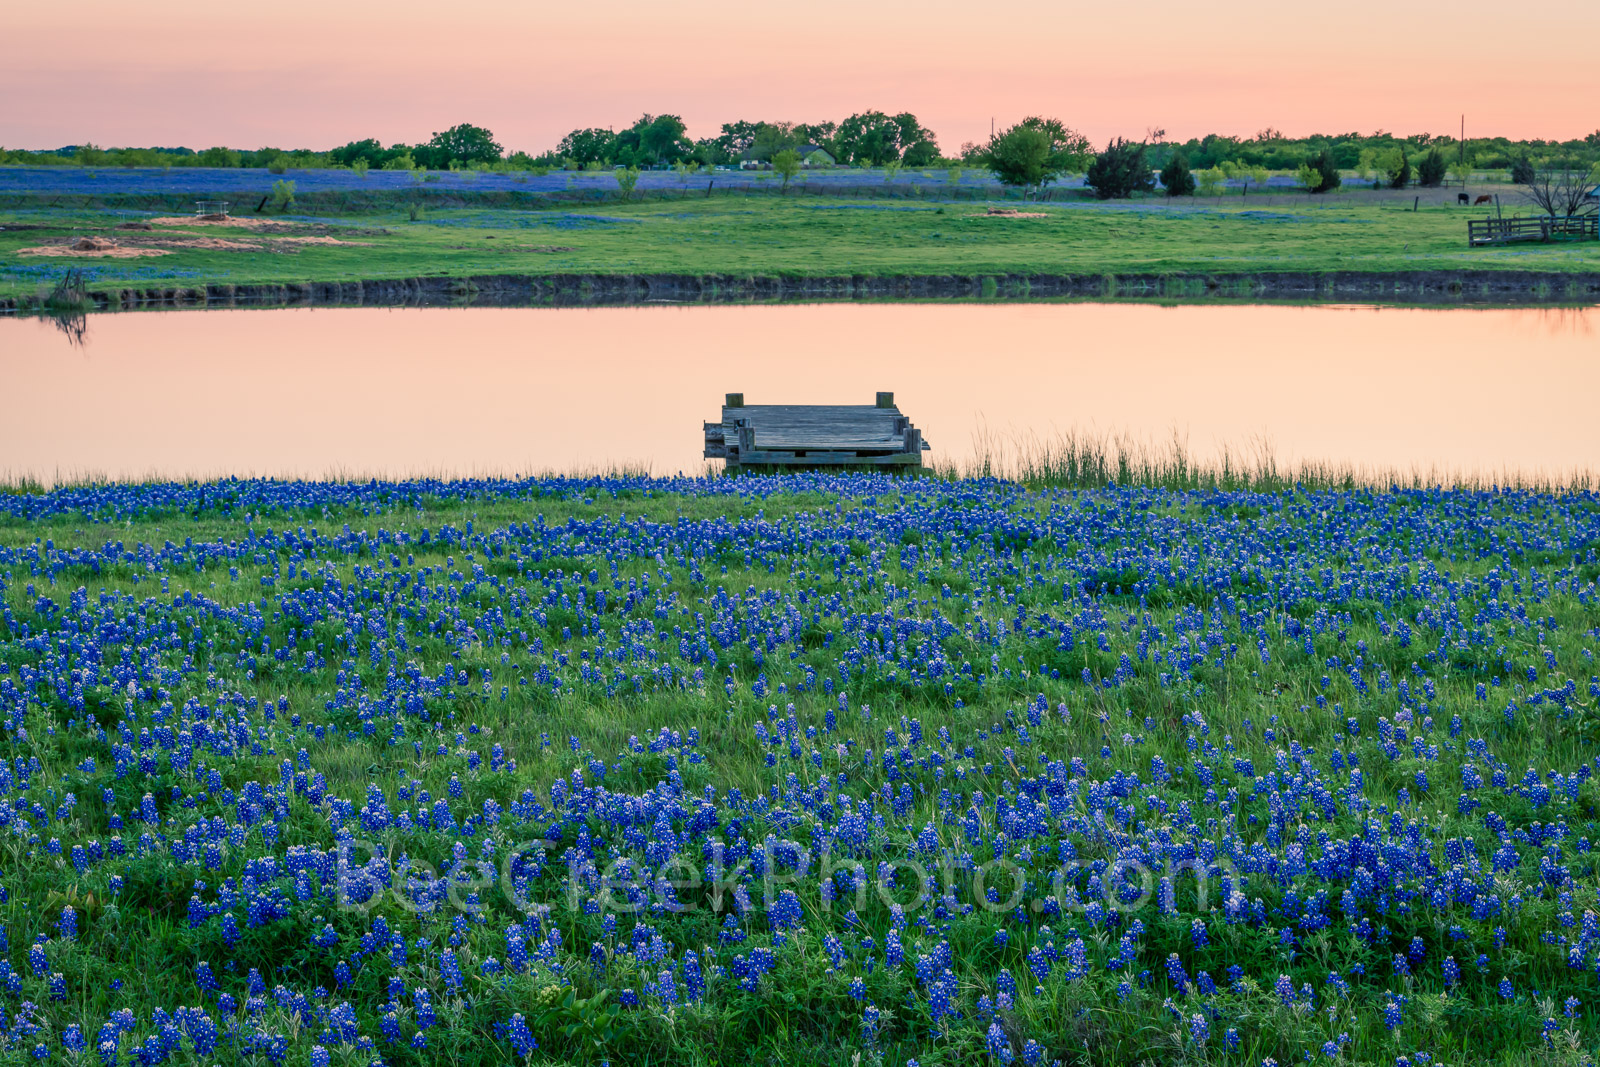 Texas bluebonnets, bluebonnet, rural, dusk, pond, tank, water edge, pier, pink, orange, wildflowers, , gulf cost images, Texas beaches, photo